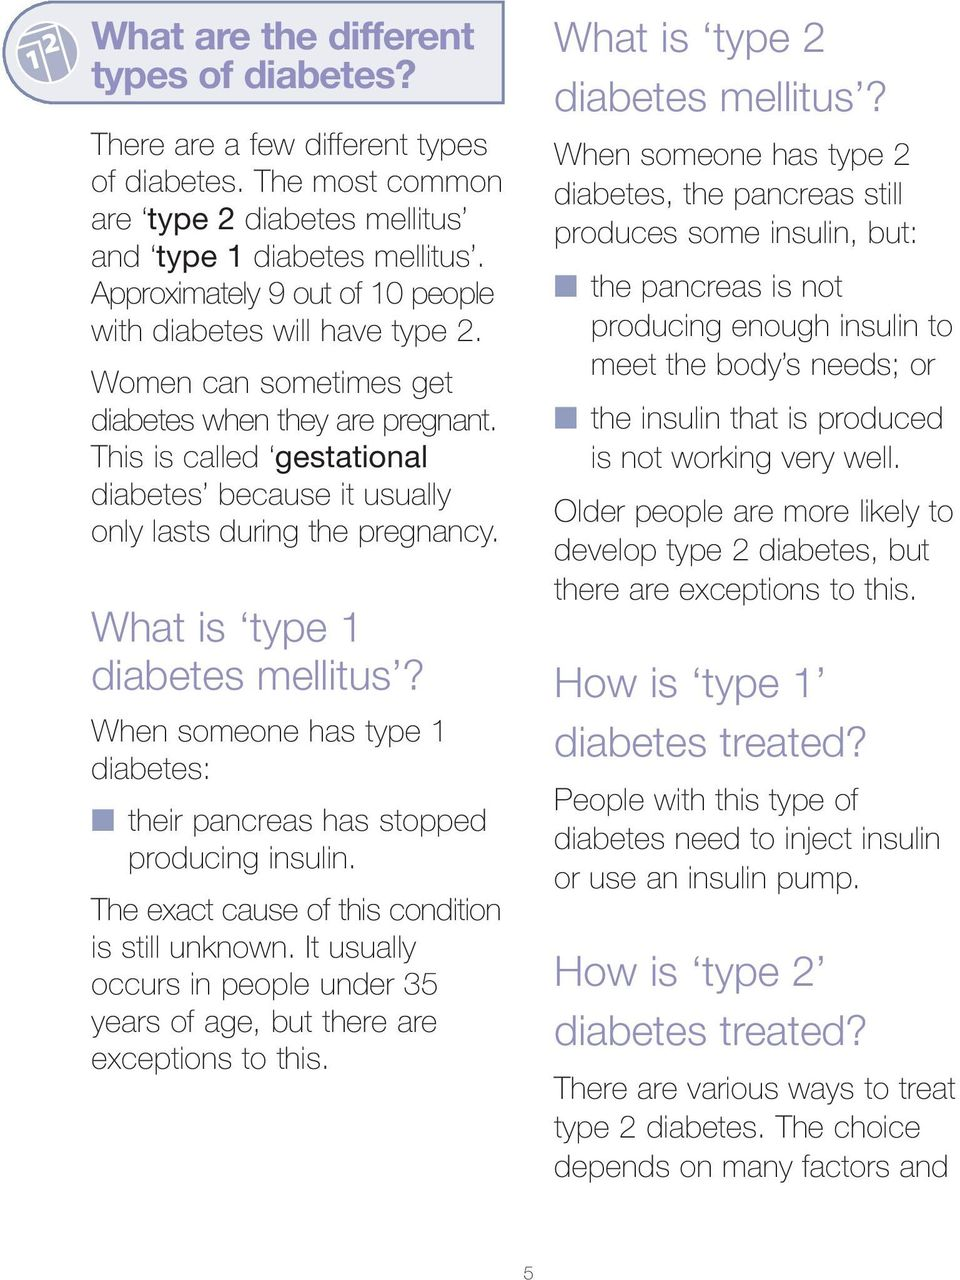 This is called gestational diabetes because it usually only lasts during the pregnancy. What is type 1 diabetes mellitus?